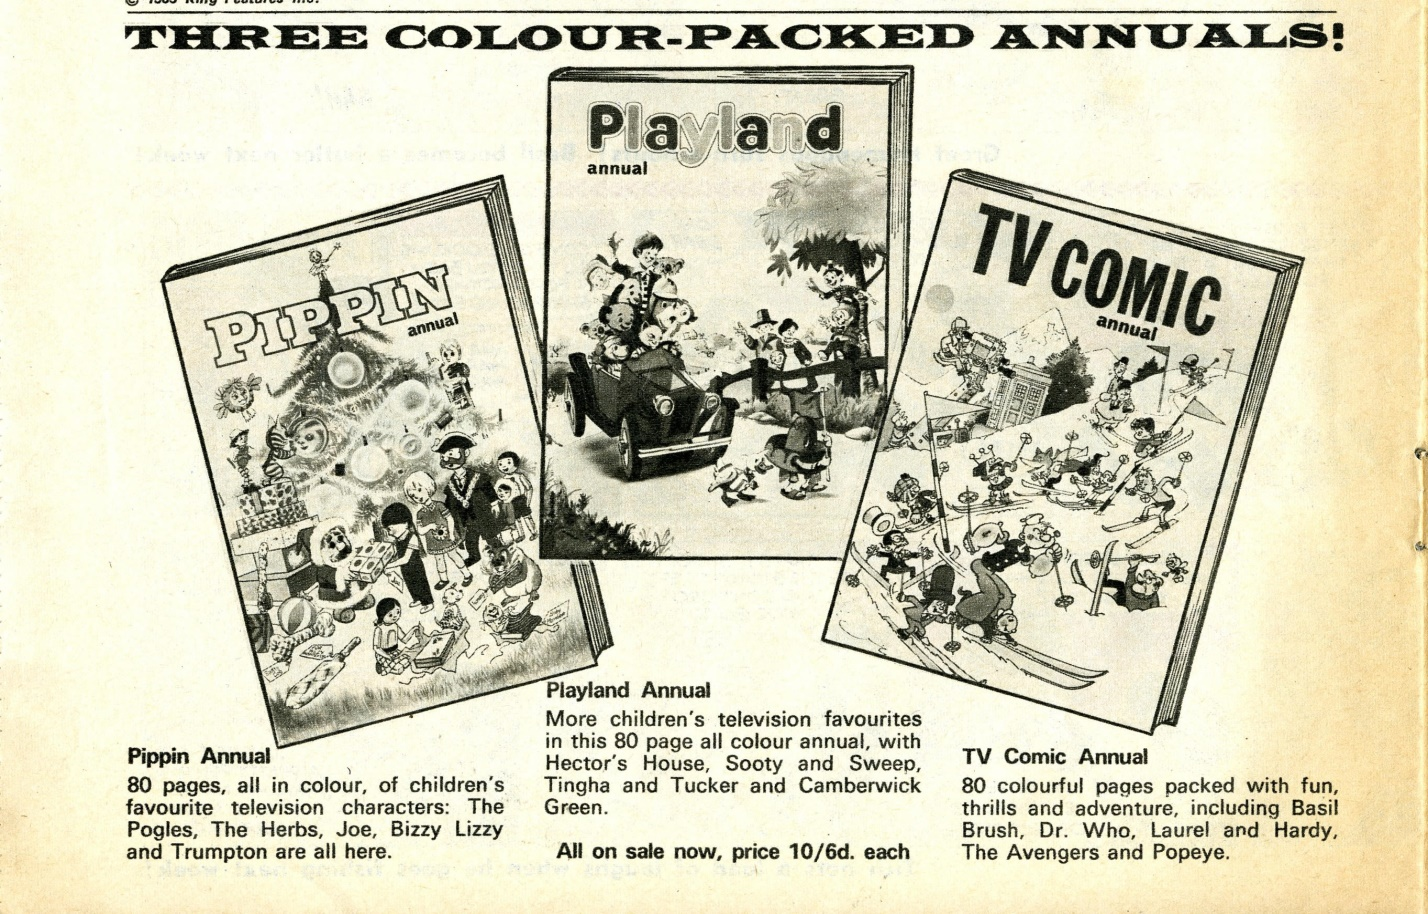 Ad. for the TV Comic Annual 1970 in TV Comic no. 931, 18 October 1969